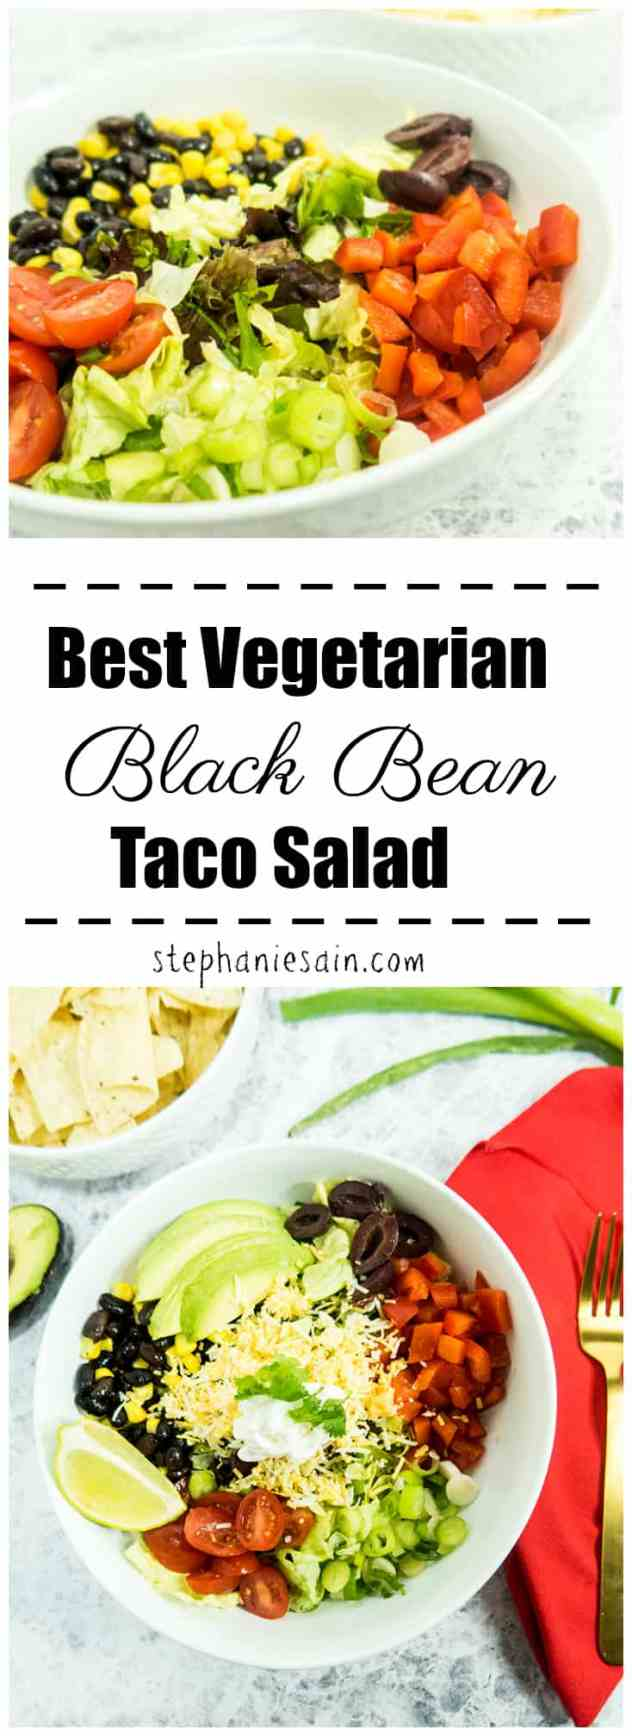 Best Vegetarian Black Bean Taco Salad is topped with all your favorite taco toppings and dressed with a chili lime vinaigrette. Perfect kid friendly salad great for your busy summer weeknights. Gluten Free with Vegan option.